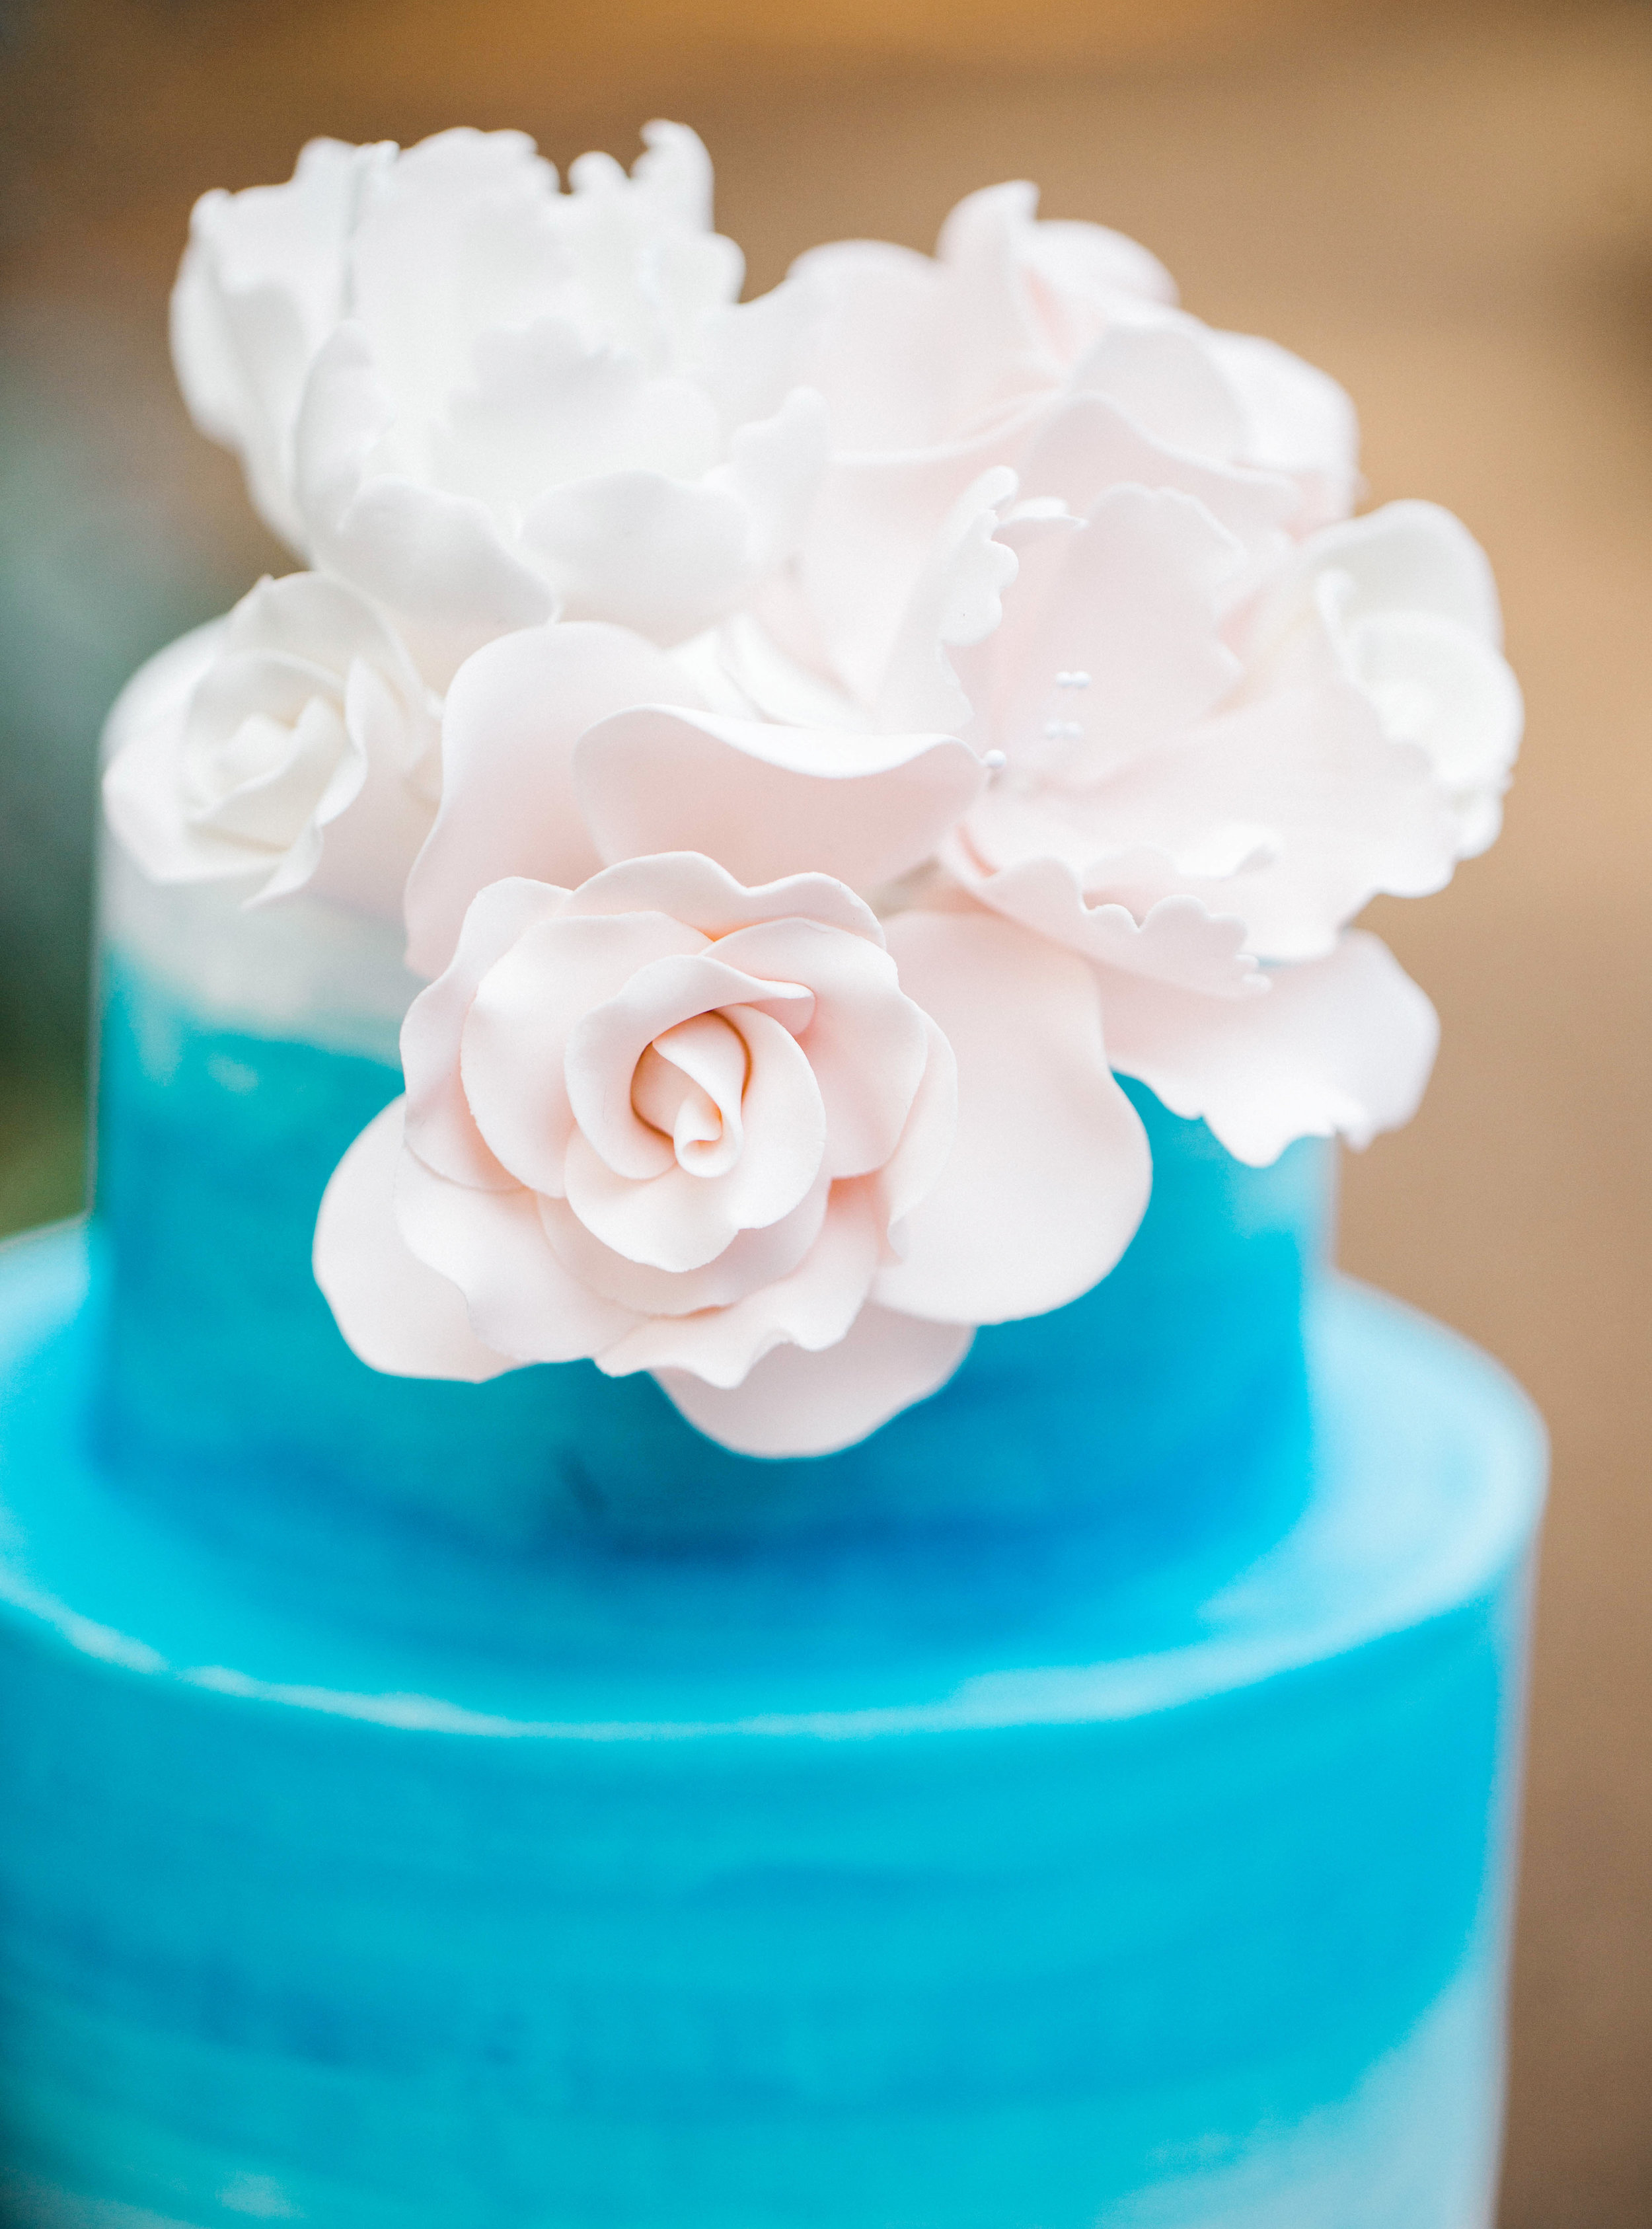 Blue wedding cake with pink roses.